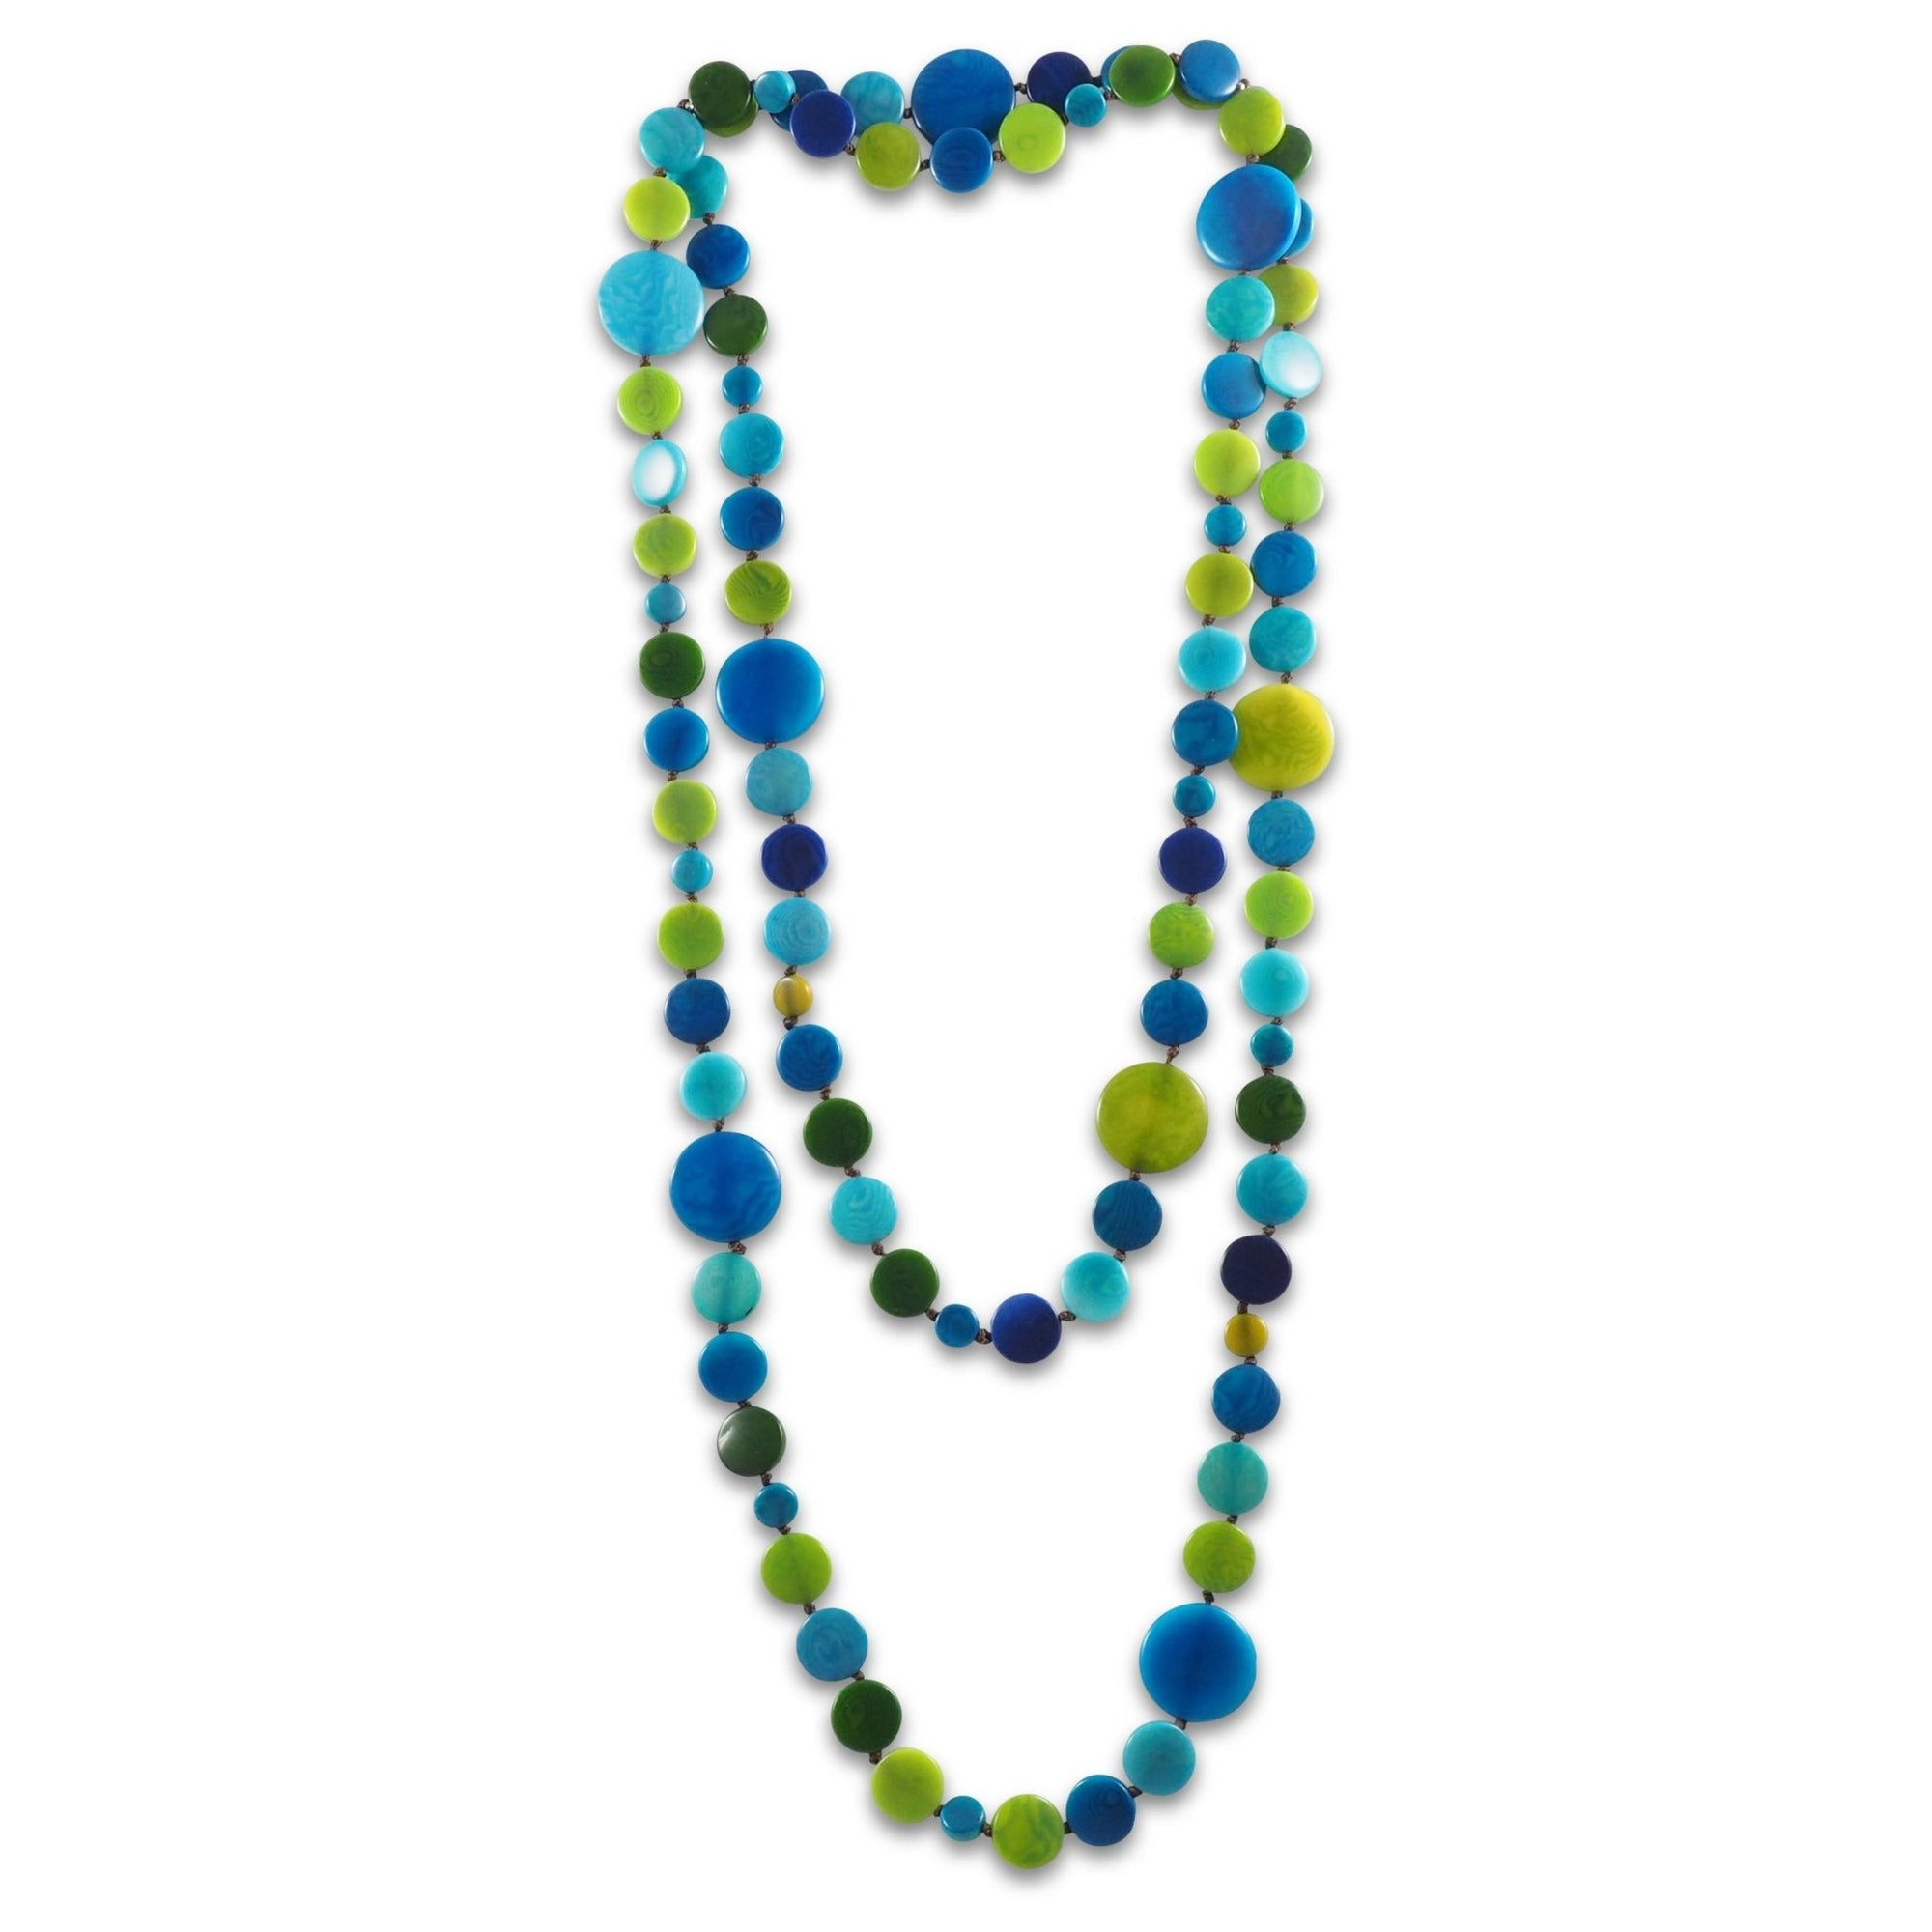 Circa Tagua Beaded Wrap Necklace - Amano Artisans